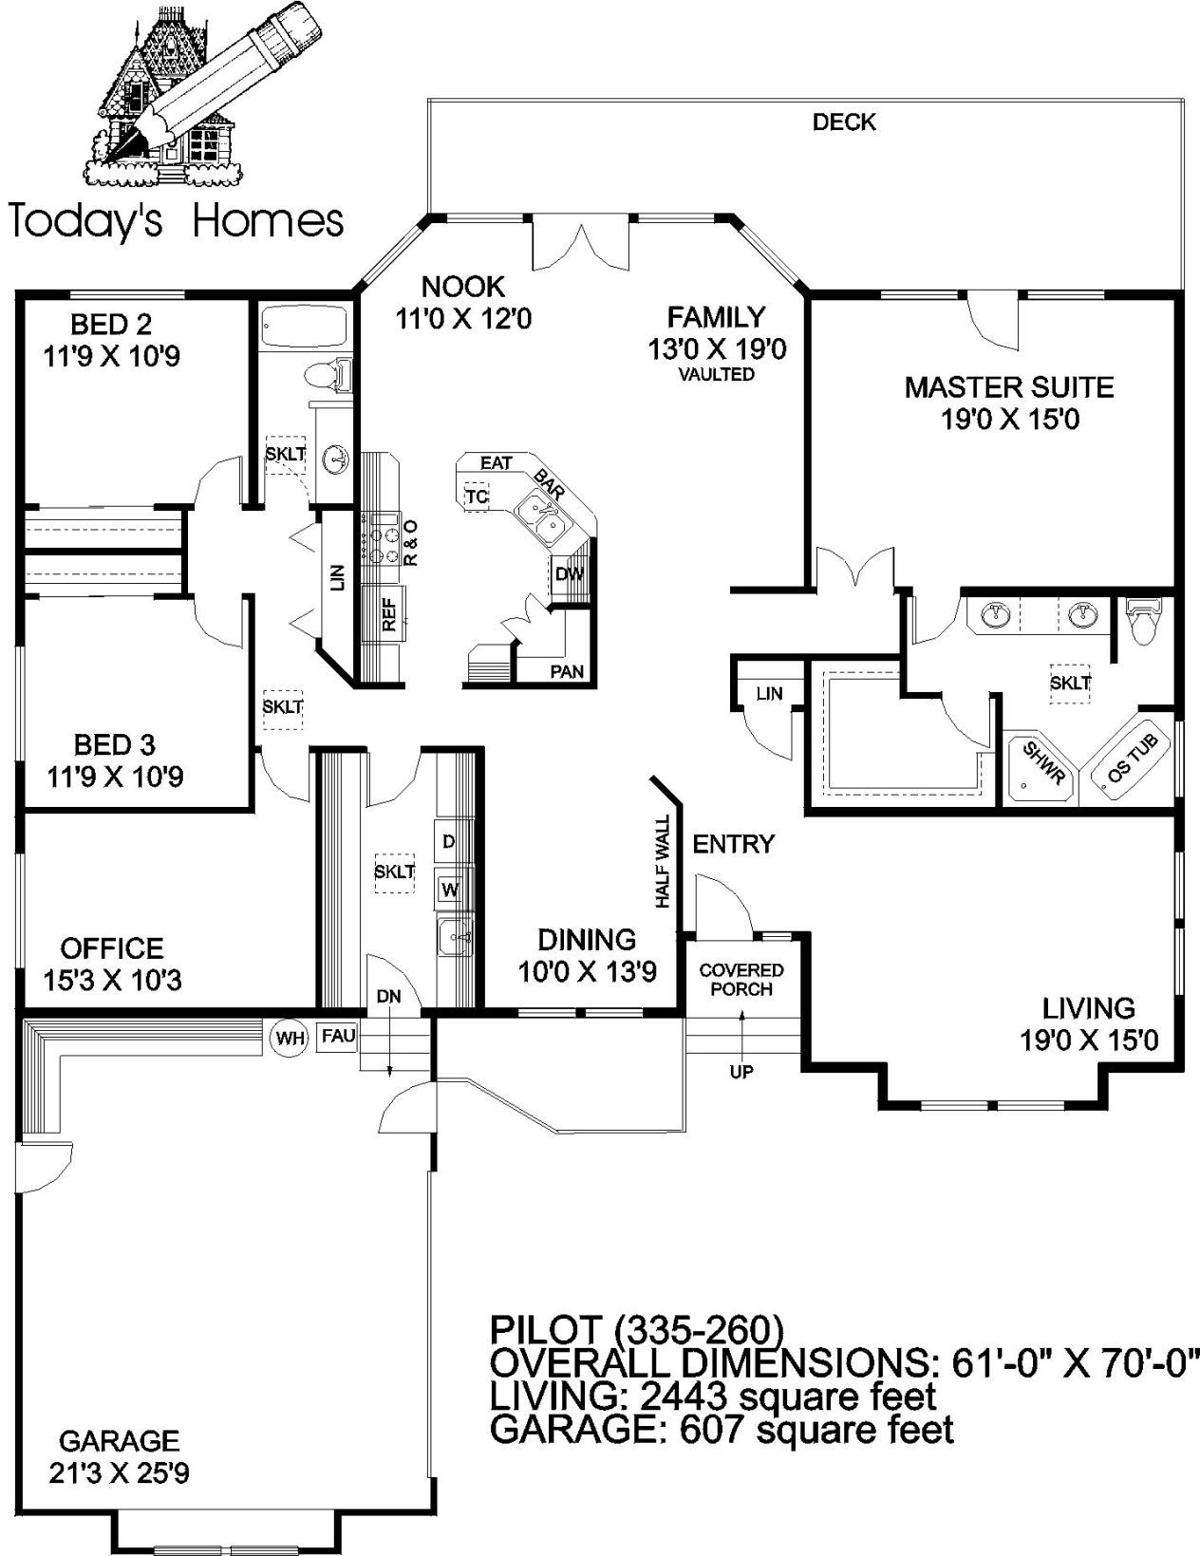 House of the Week floor plan